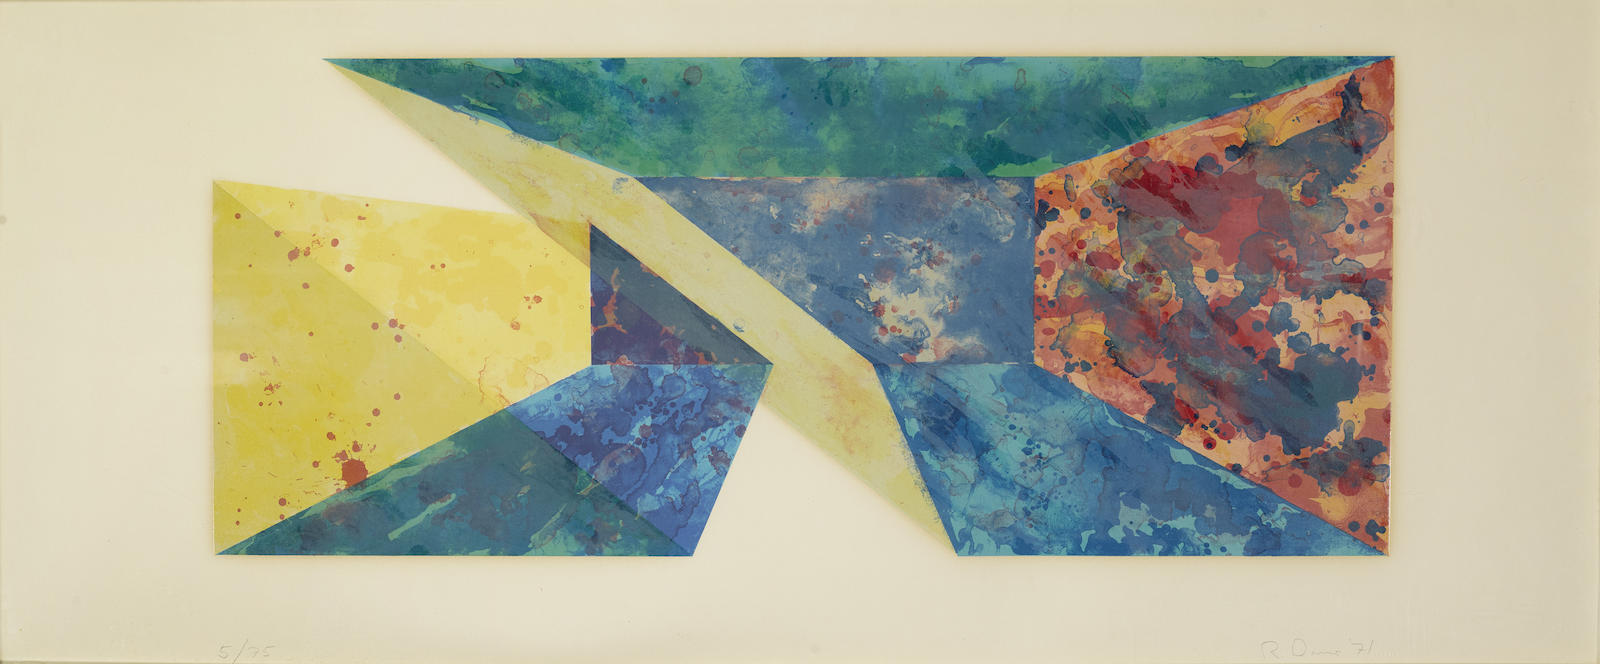 Ron Davis-Diagonal Slice, From Rectangle Series; Yellow Slab (G. 366; 1125)-1983